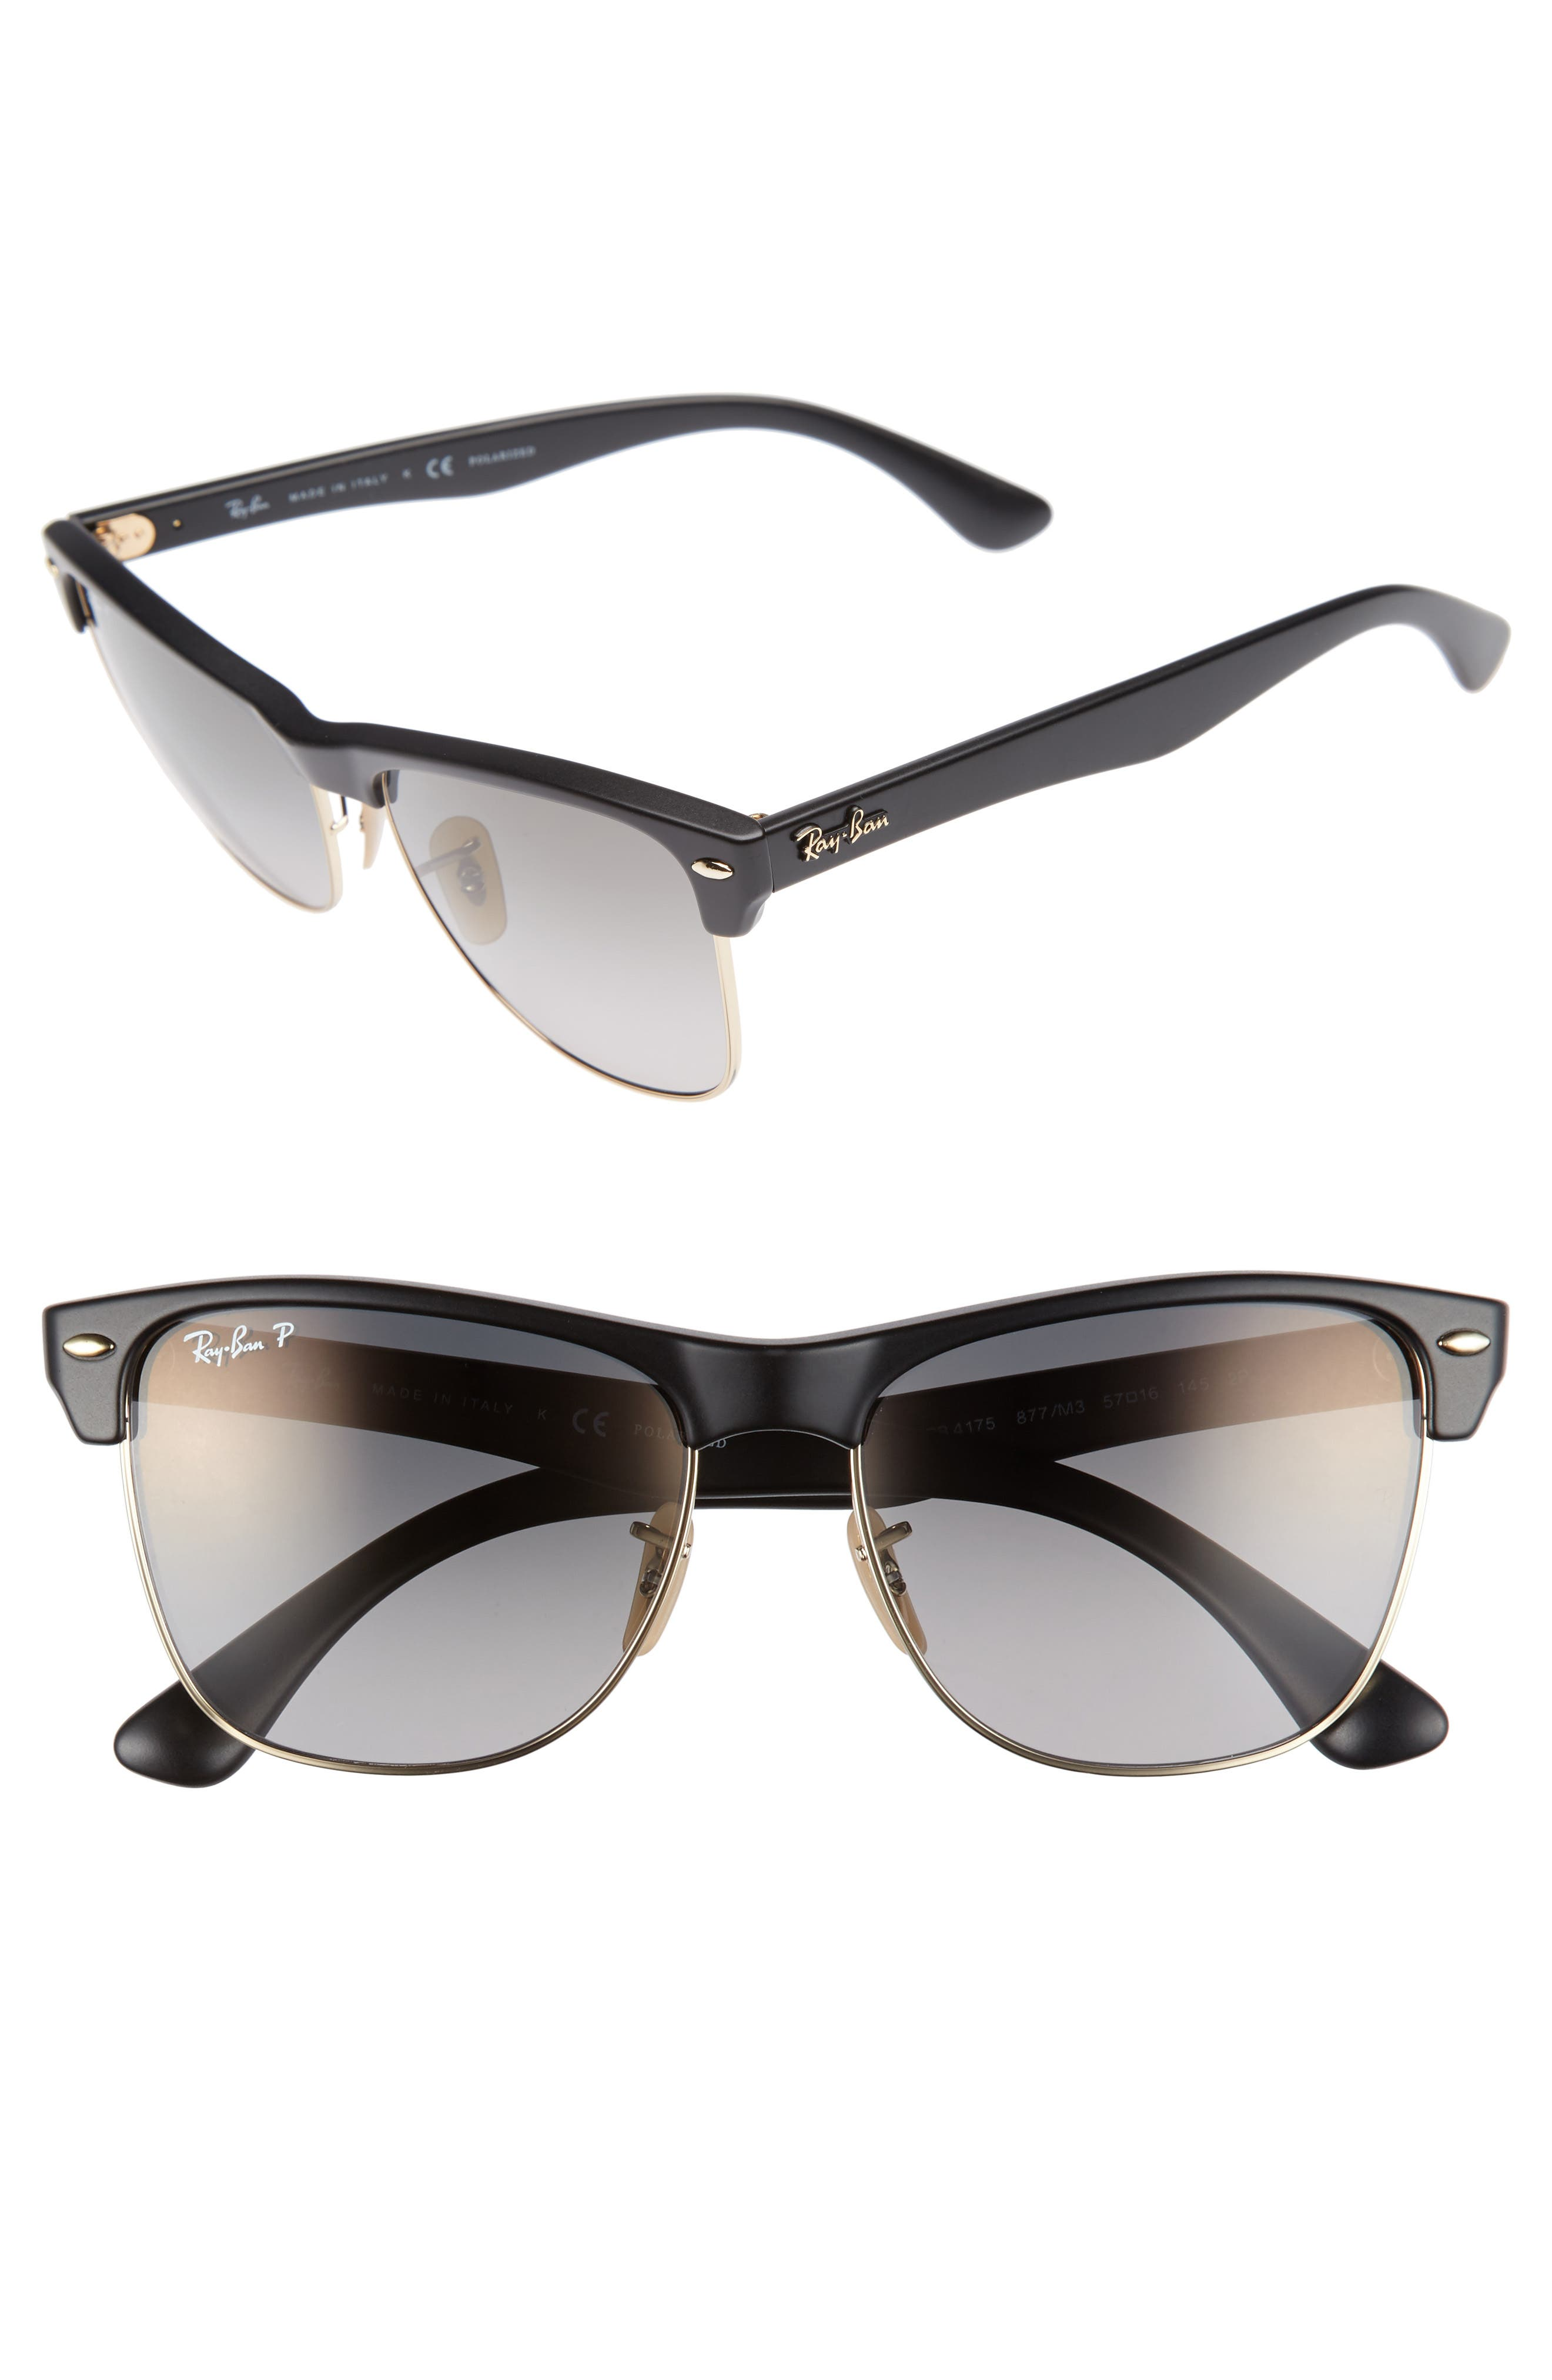 RAY-BAN Clubmaster Flash 57mm Polarized Sunglasses